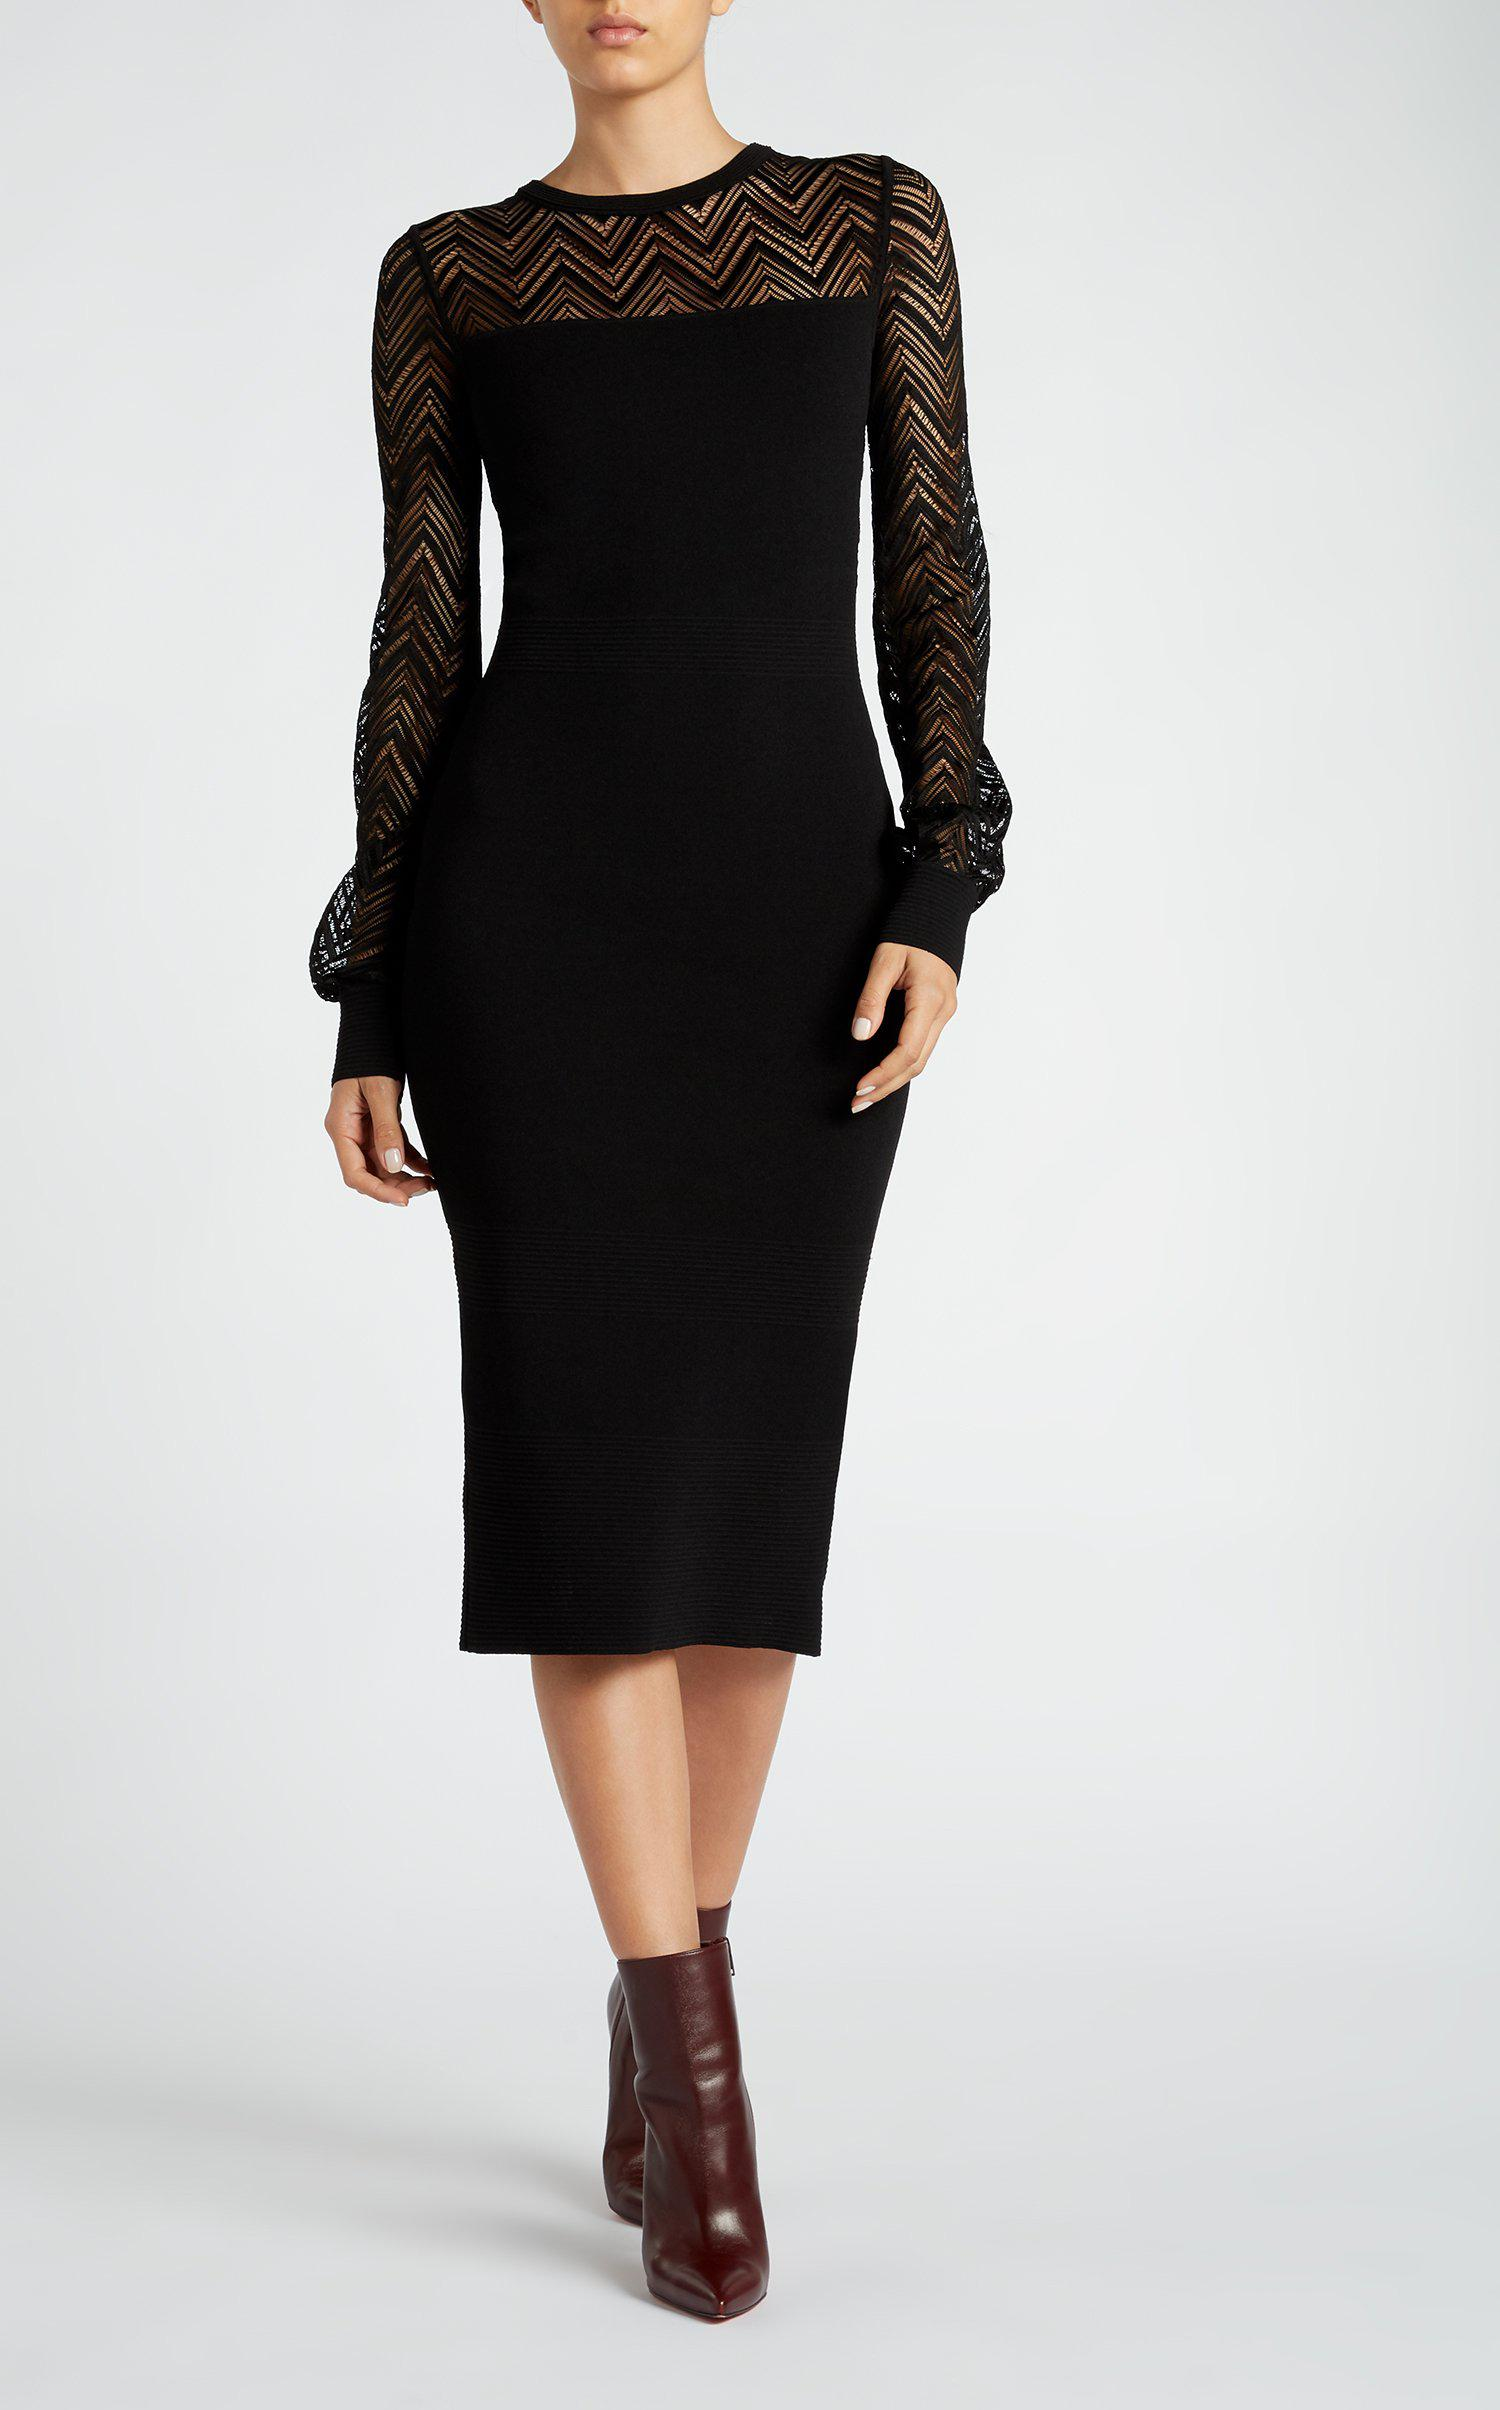 518c2ee4e9 Lyst - Roland Mouret Simmons Dress in Black